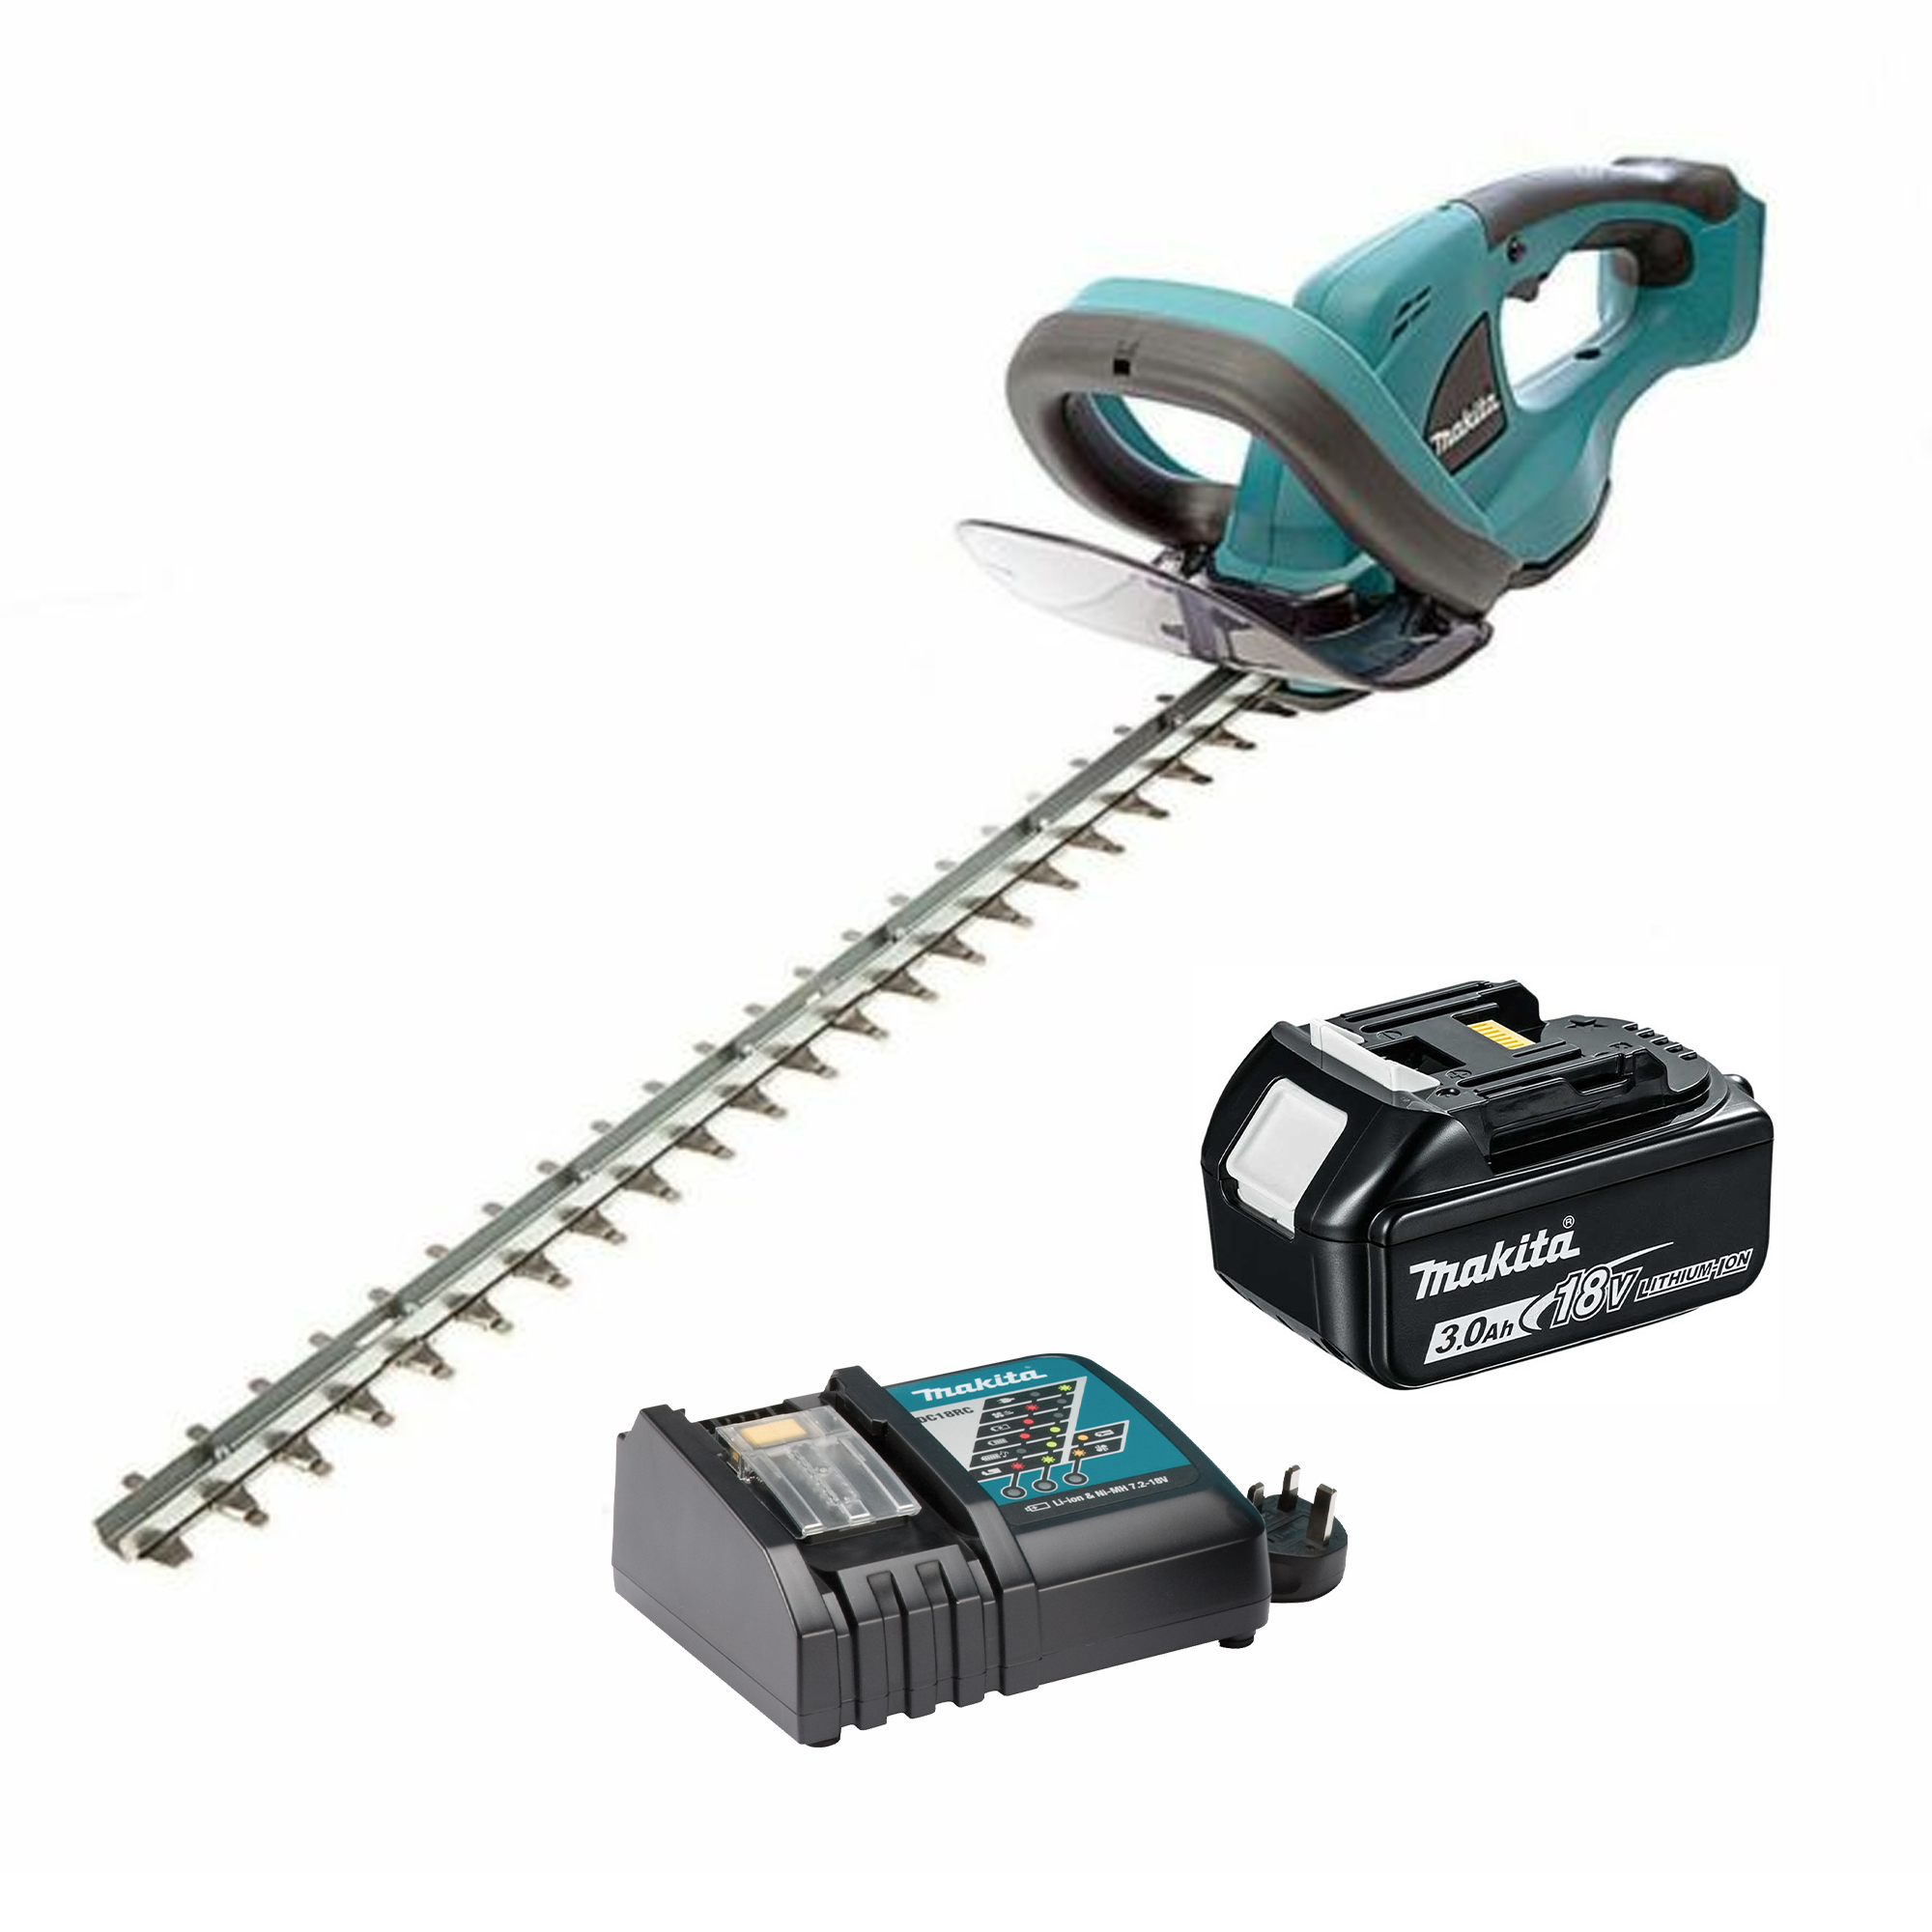 makita duh523rfx makita 18v lithium ion 52cm hedge trimmer. Black Bedroom Furniture Sets. Home Design Ideas